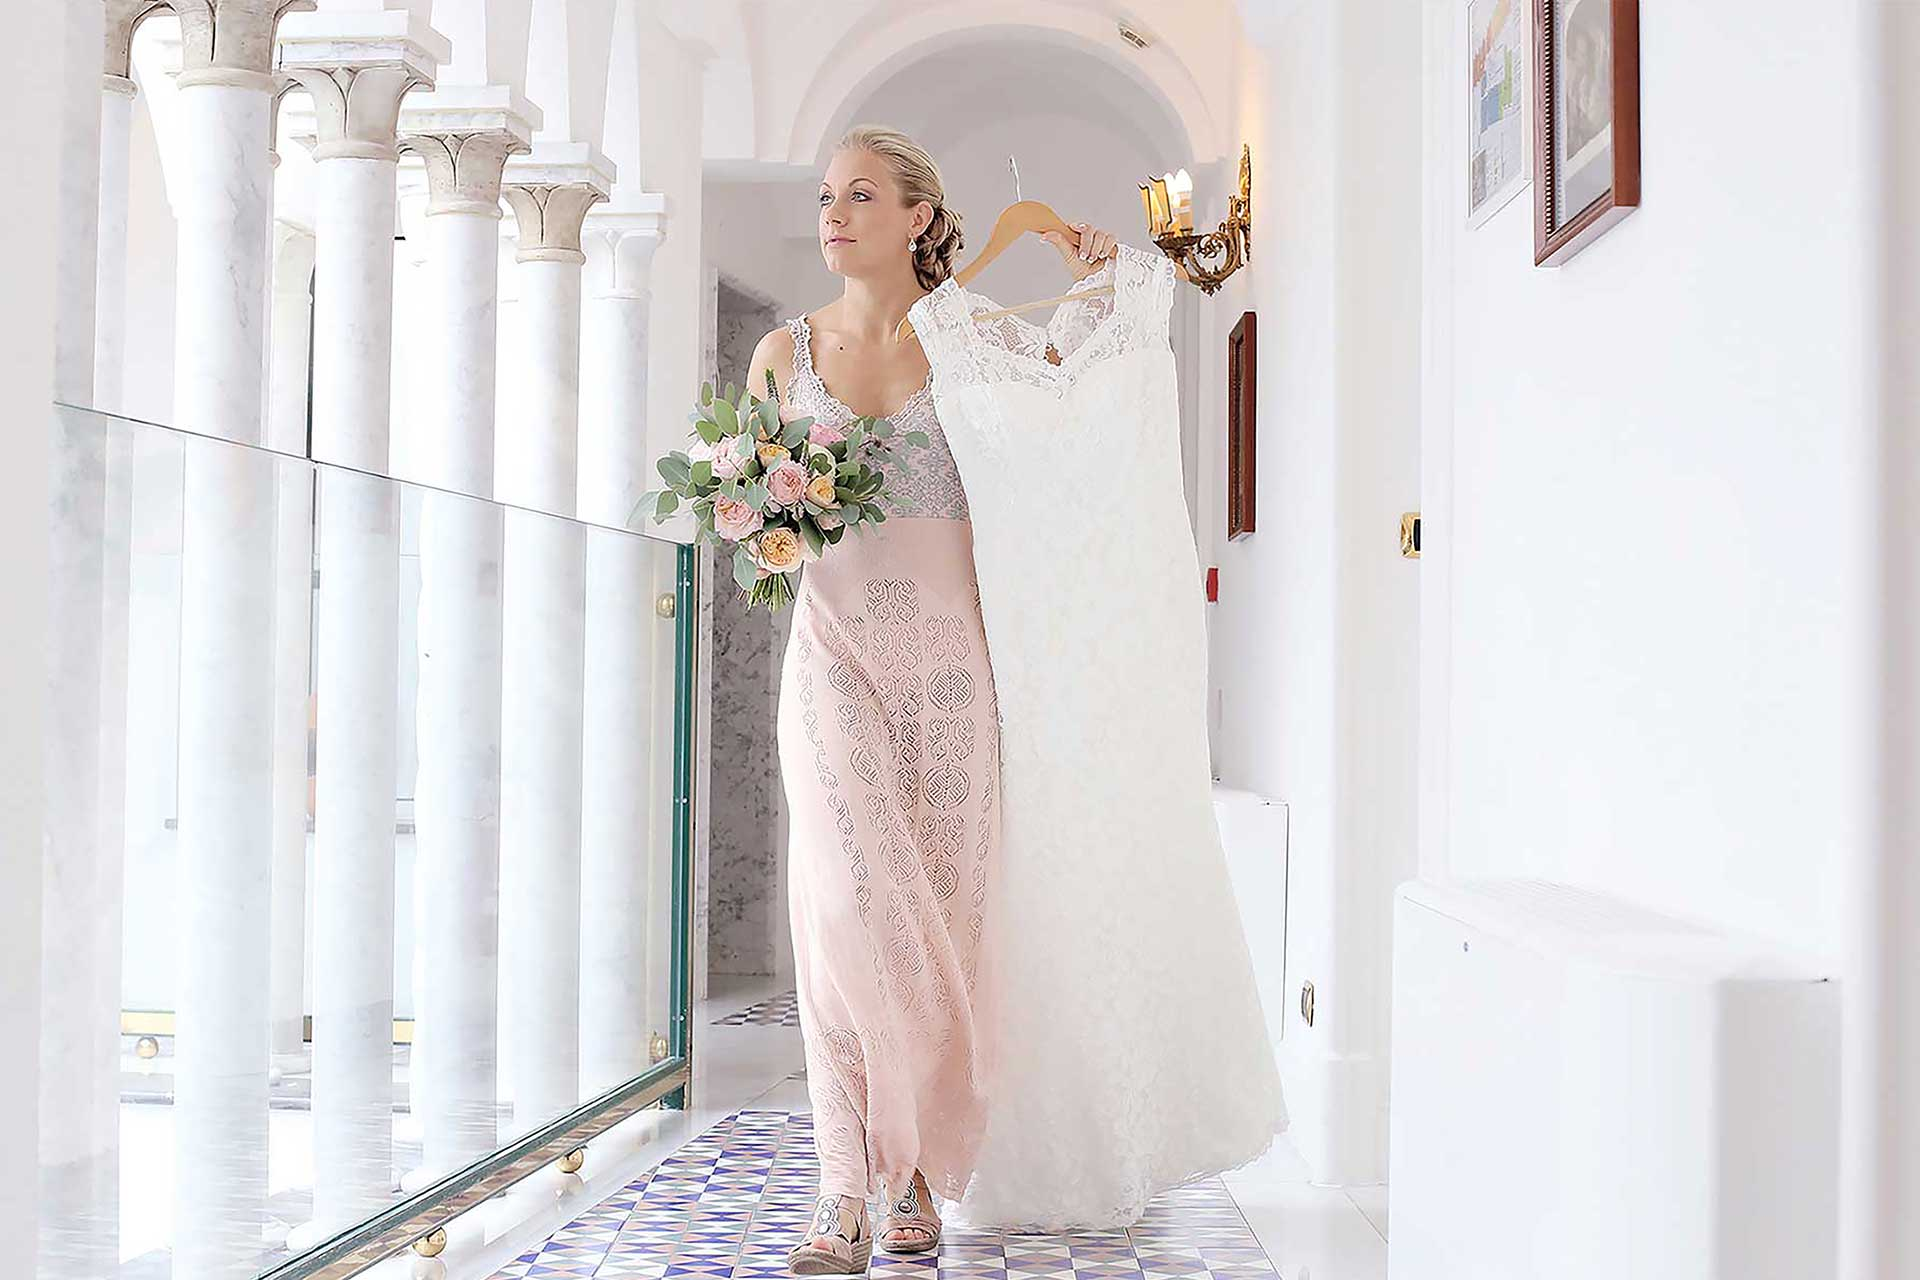 Destination Luxury Elopement Civil Protestant Symbolic Catholic Indian Ceremony Hotel Palazzo Avino Location Wedding Photographer Planner Claudia Francese Photography Sisters